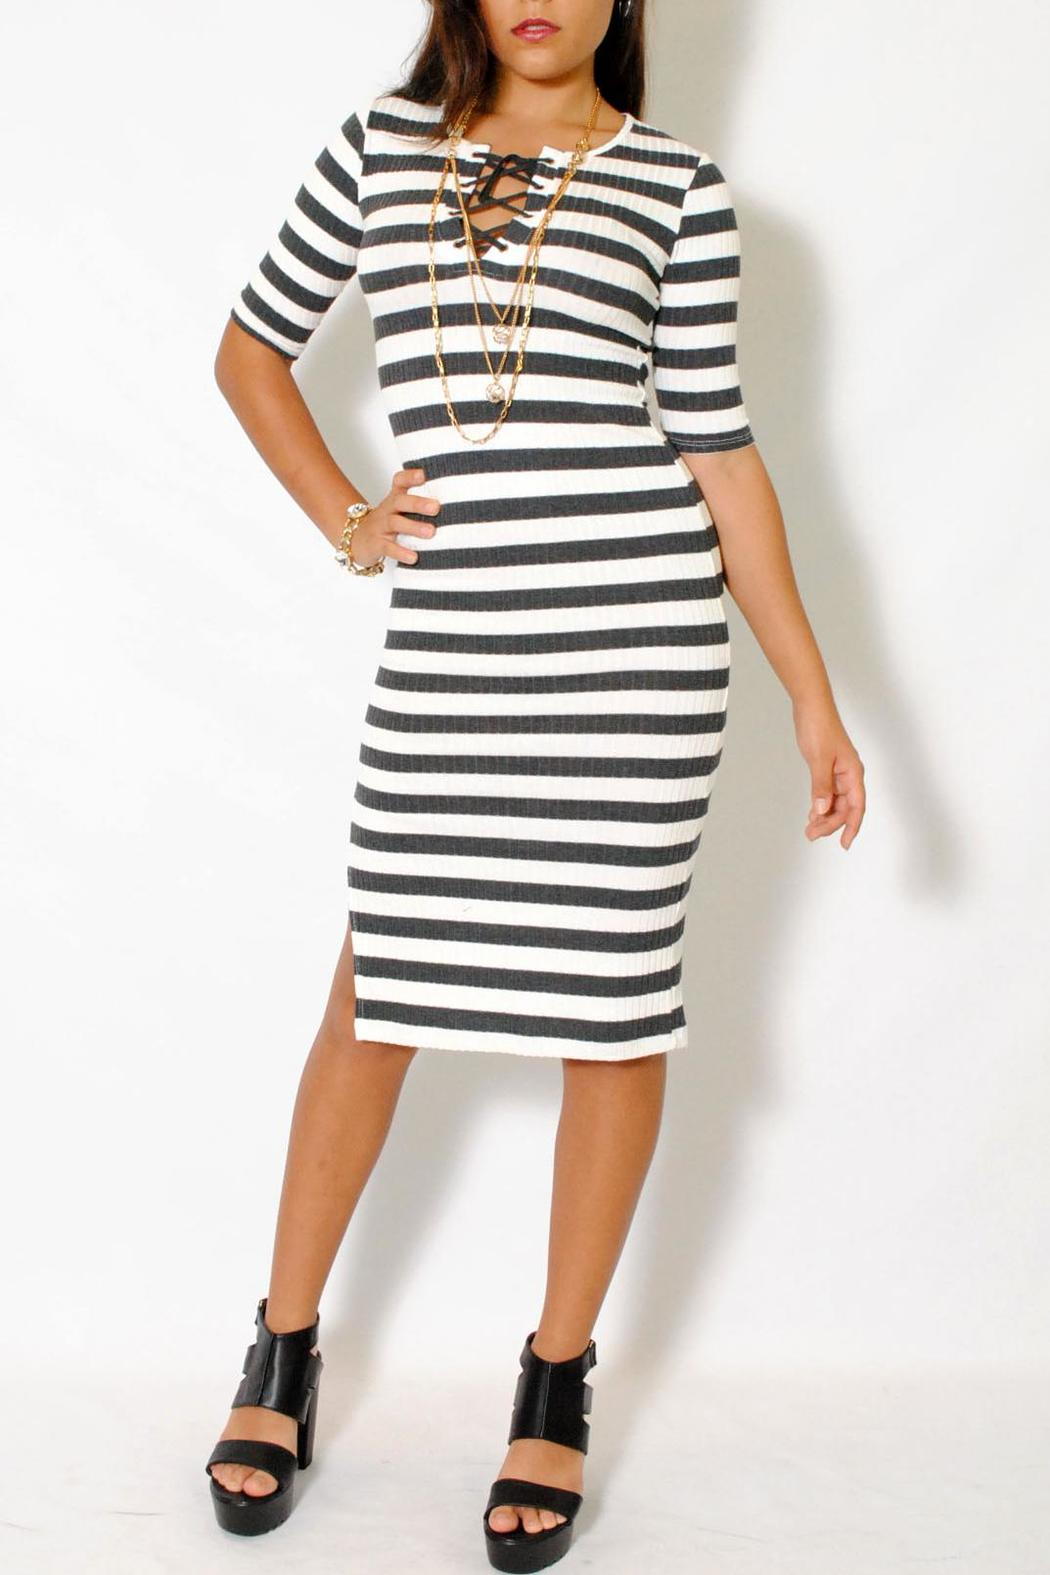 Theeffortlesschic La Roxx Laced Up Striped Dress From Miami By L A Roxx